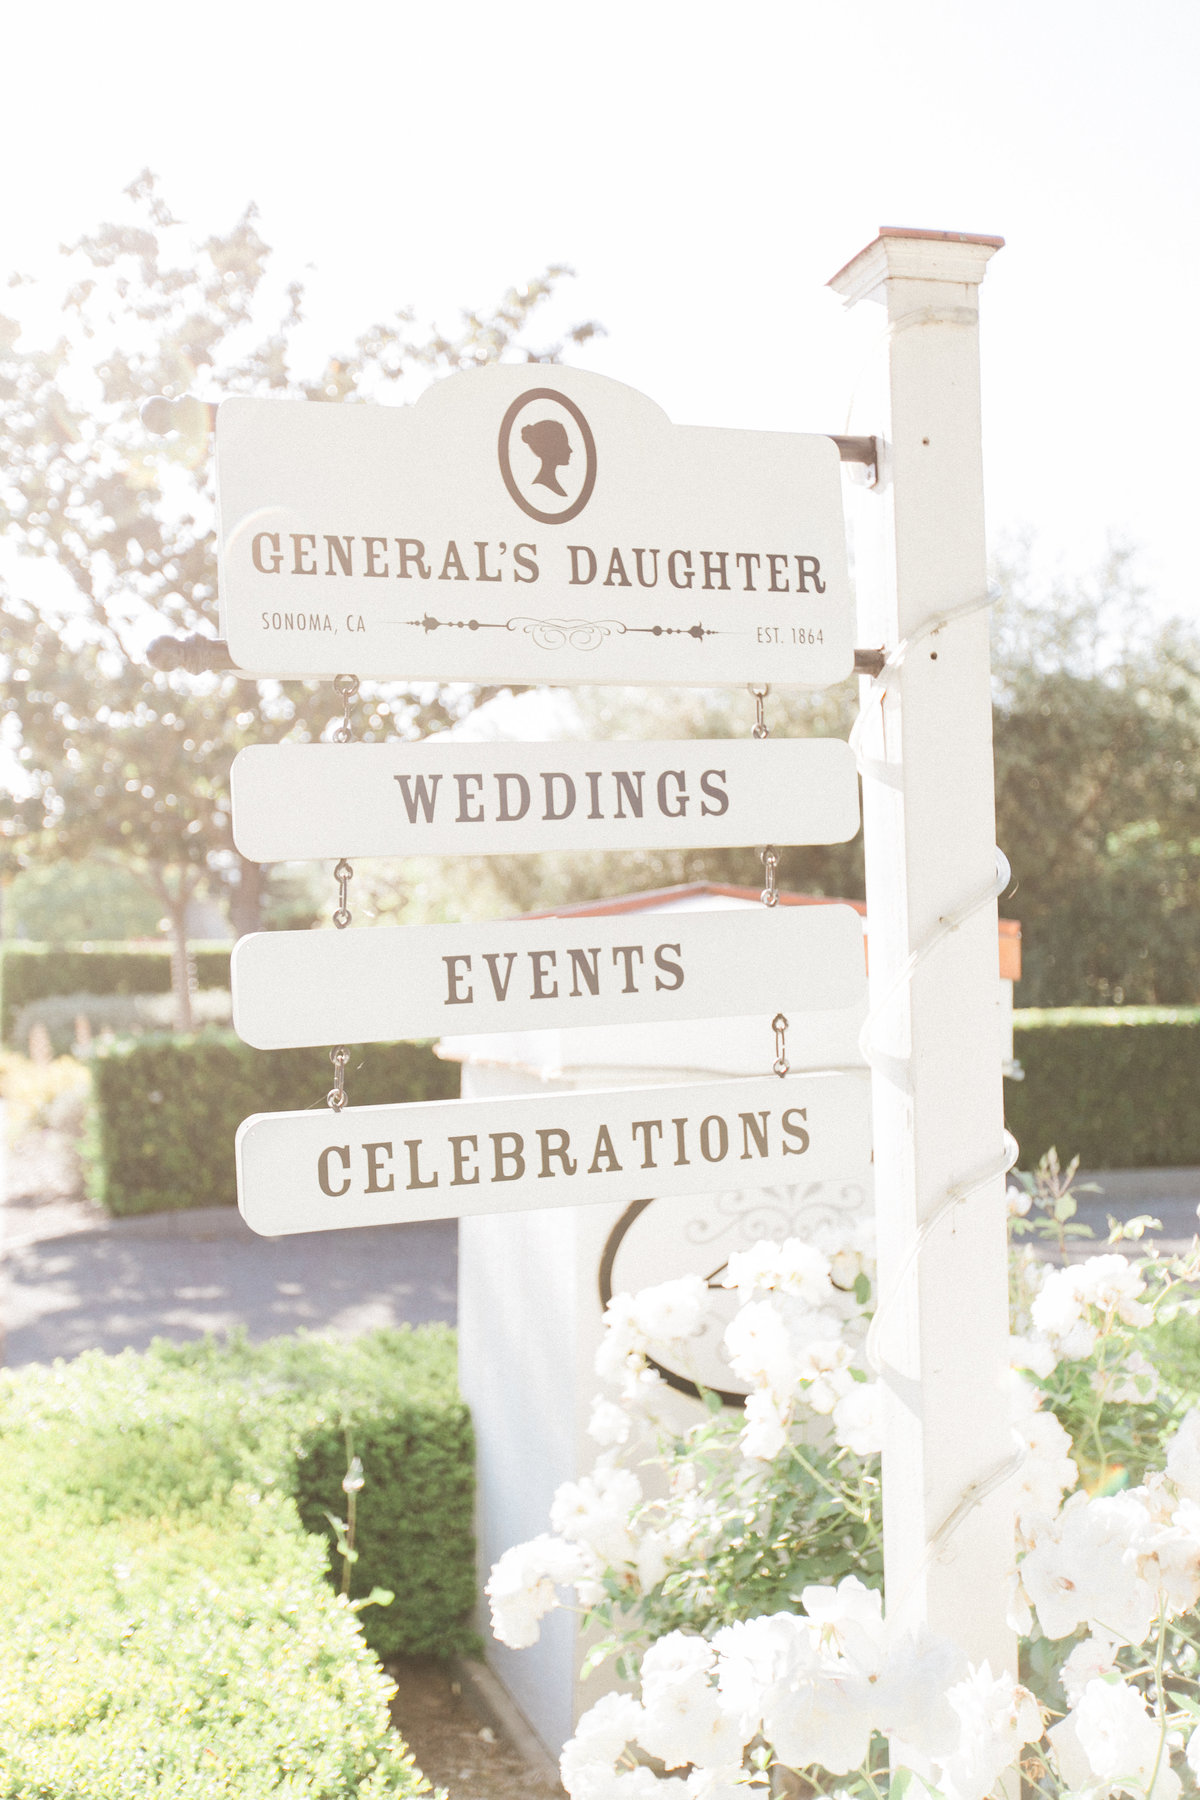 Generals Daughter Sonoma Weddings